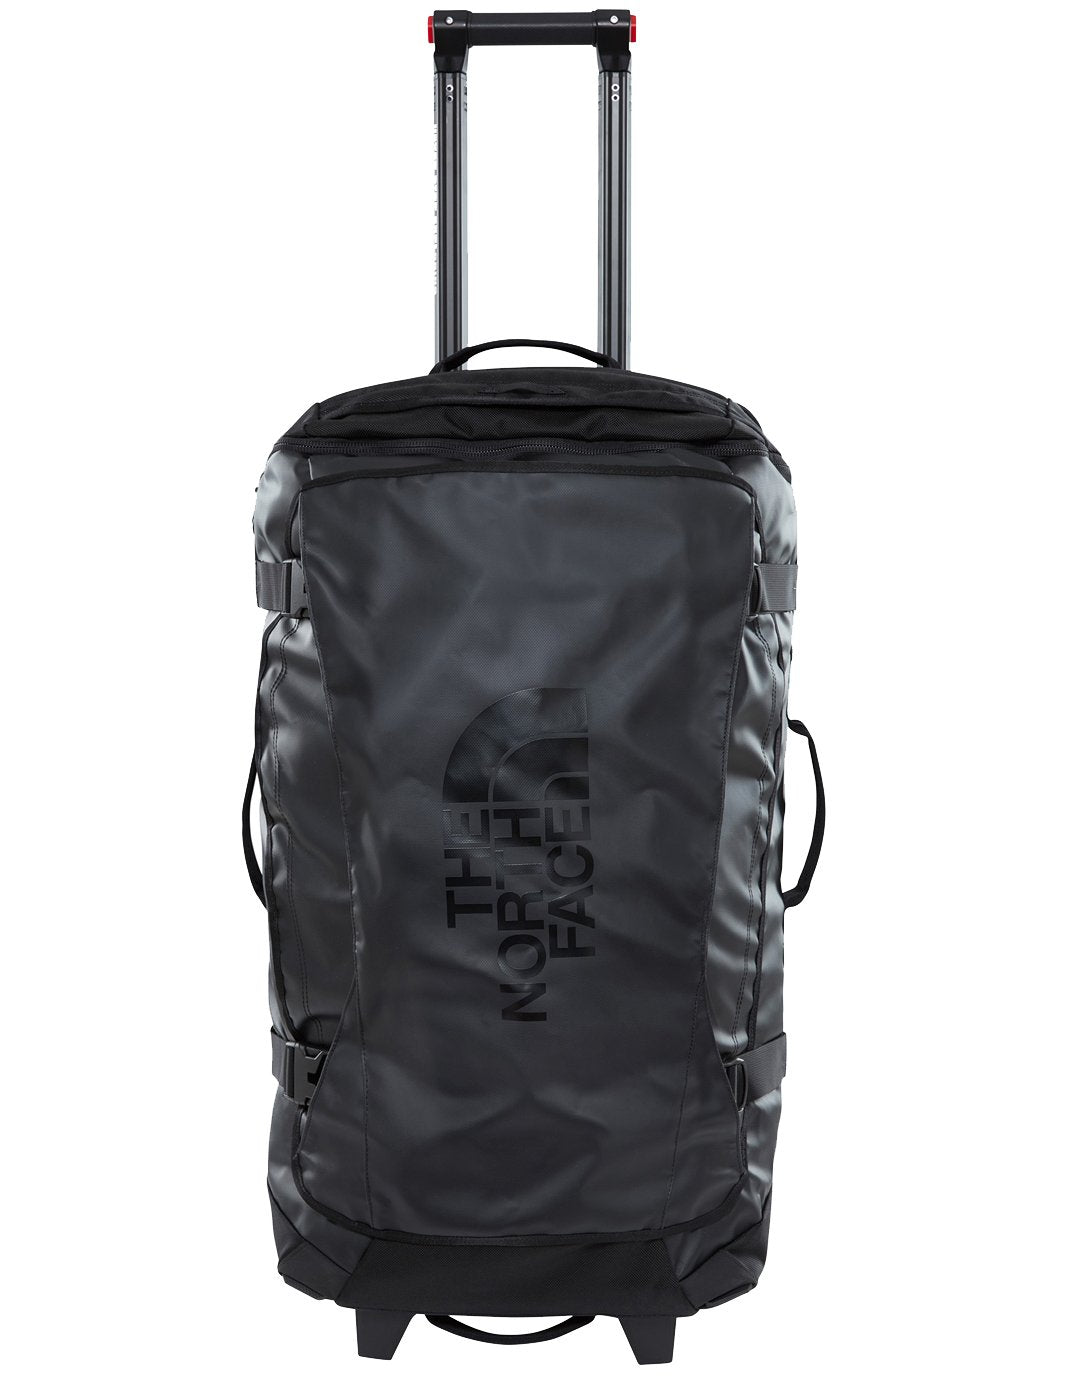 680d57a38 The North Face Rolling Thunder 30 Inch | Simply Hike UK